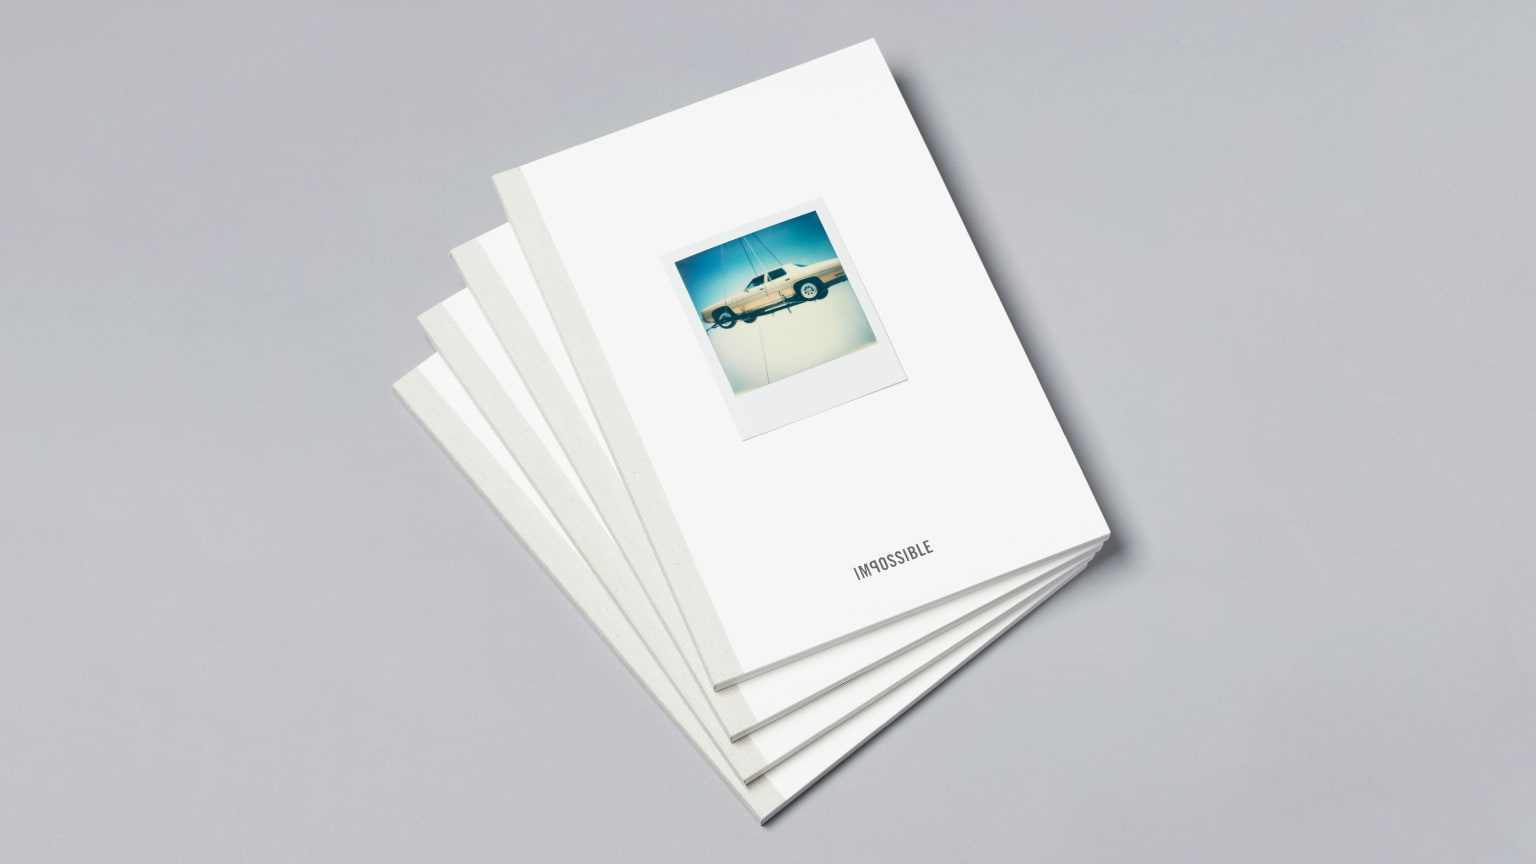 Impossible: brand book